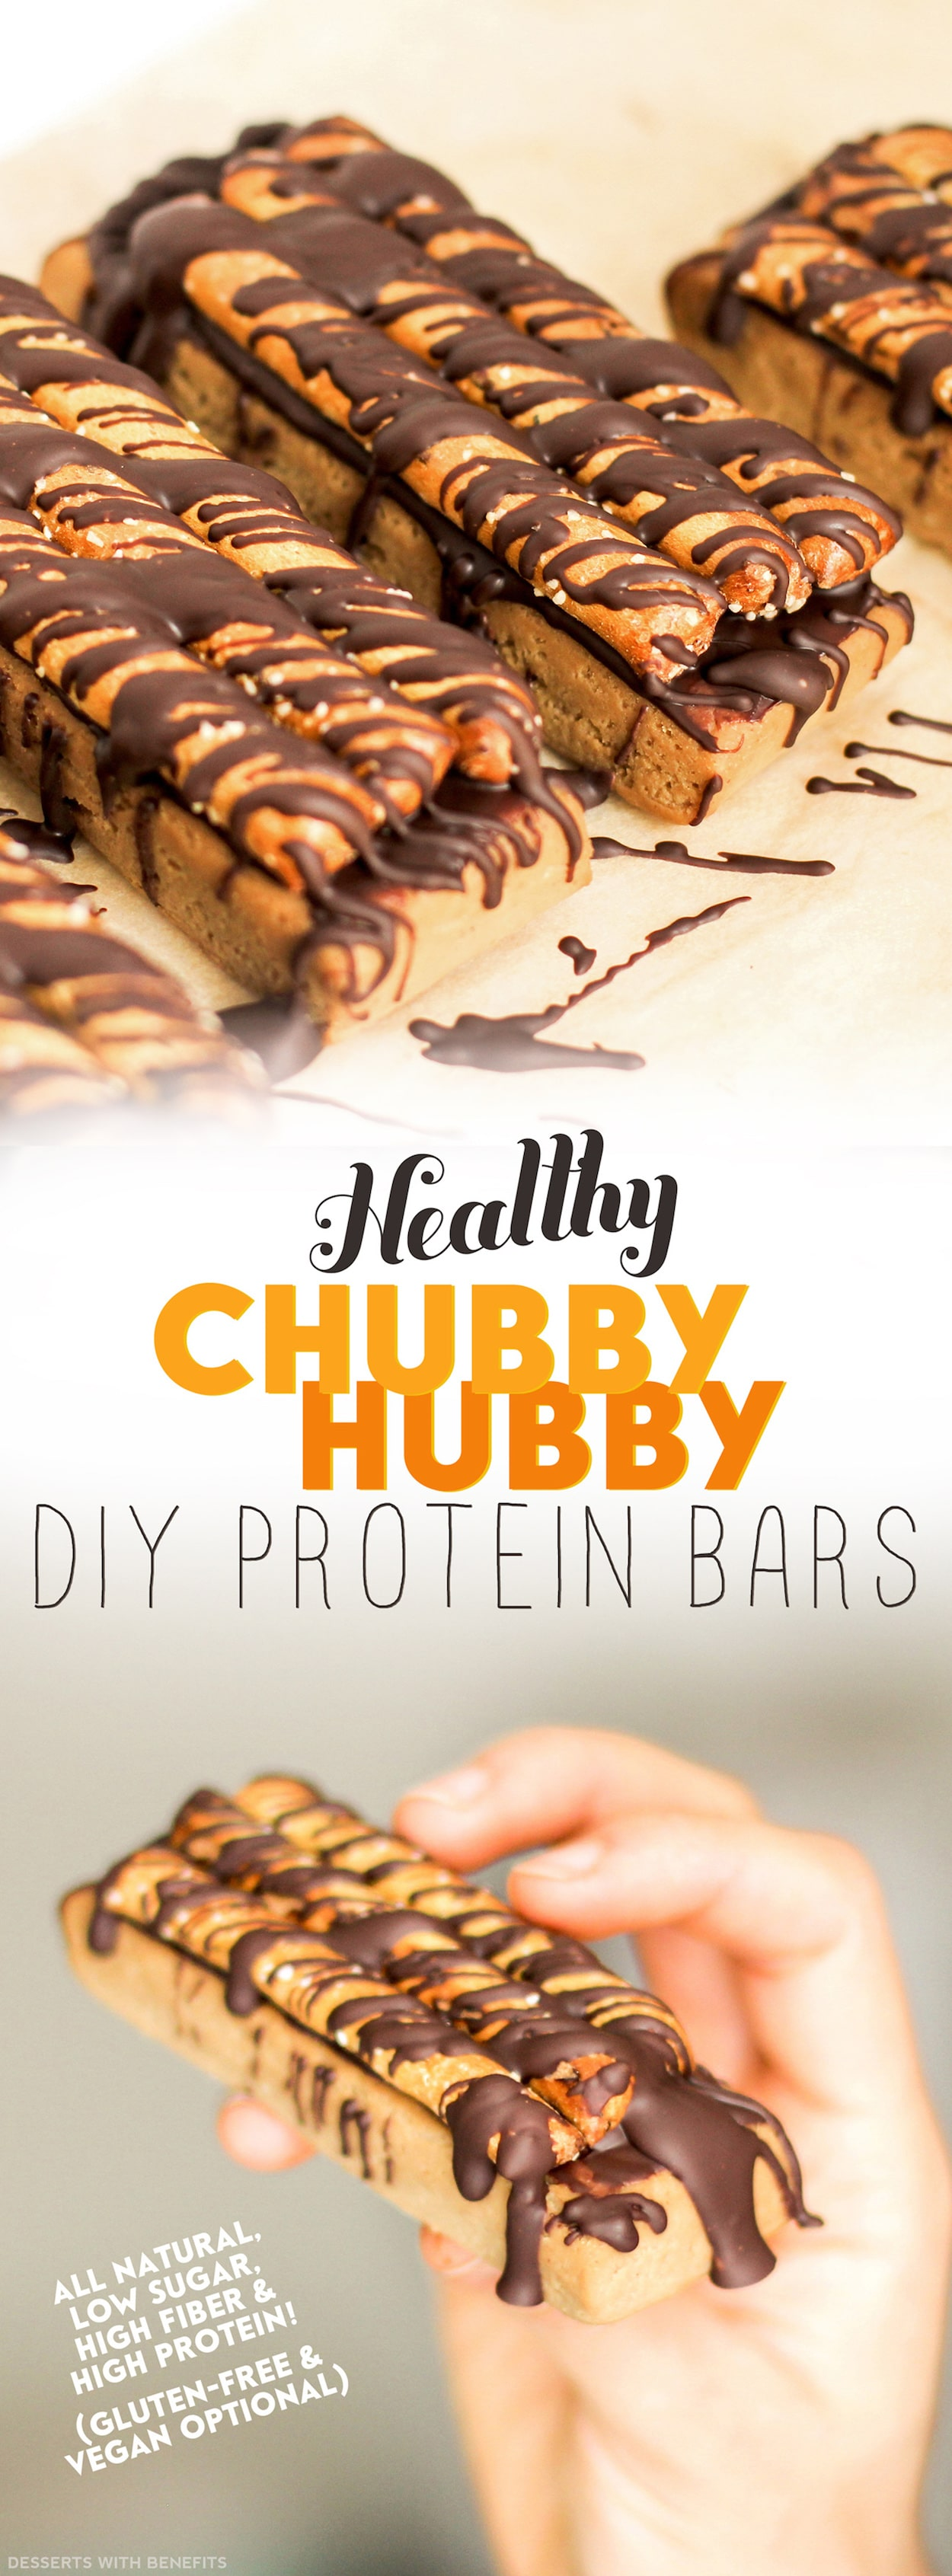 Healthy Chubby Hubby DIY Protein Bars from the DIY Protein Bars Cookbook – authored by Jessica Stier of the Desserts with Benefits Blog